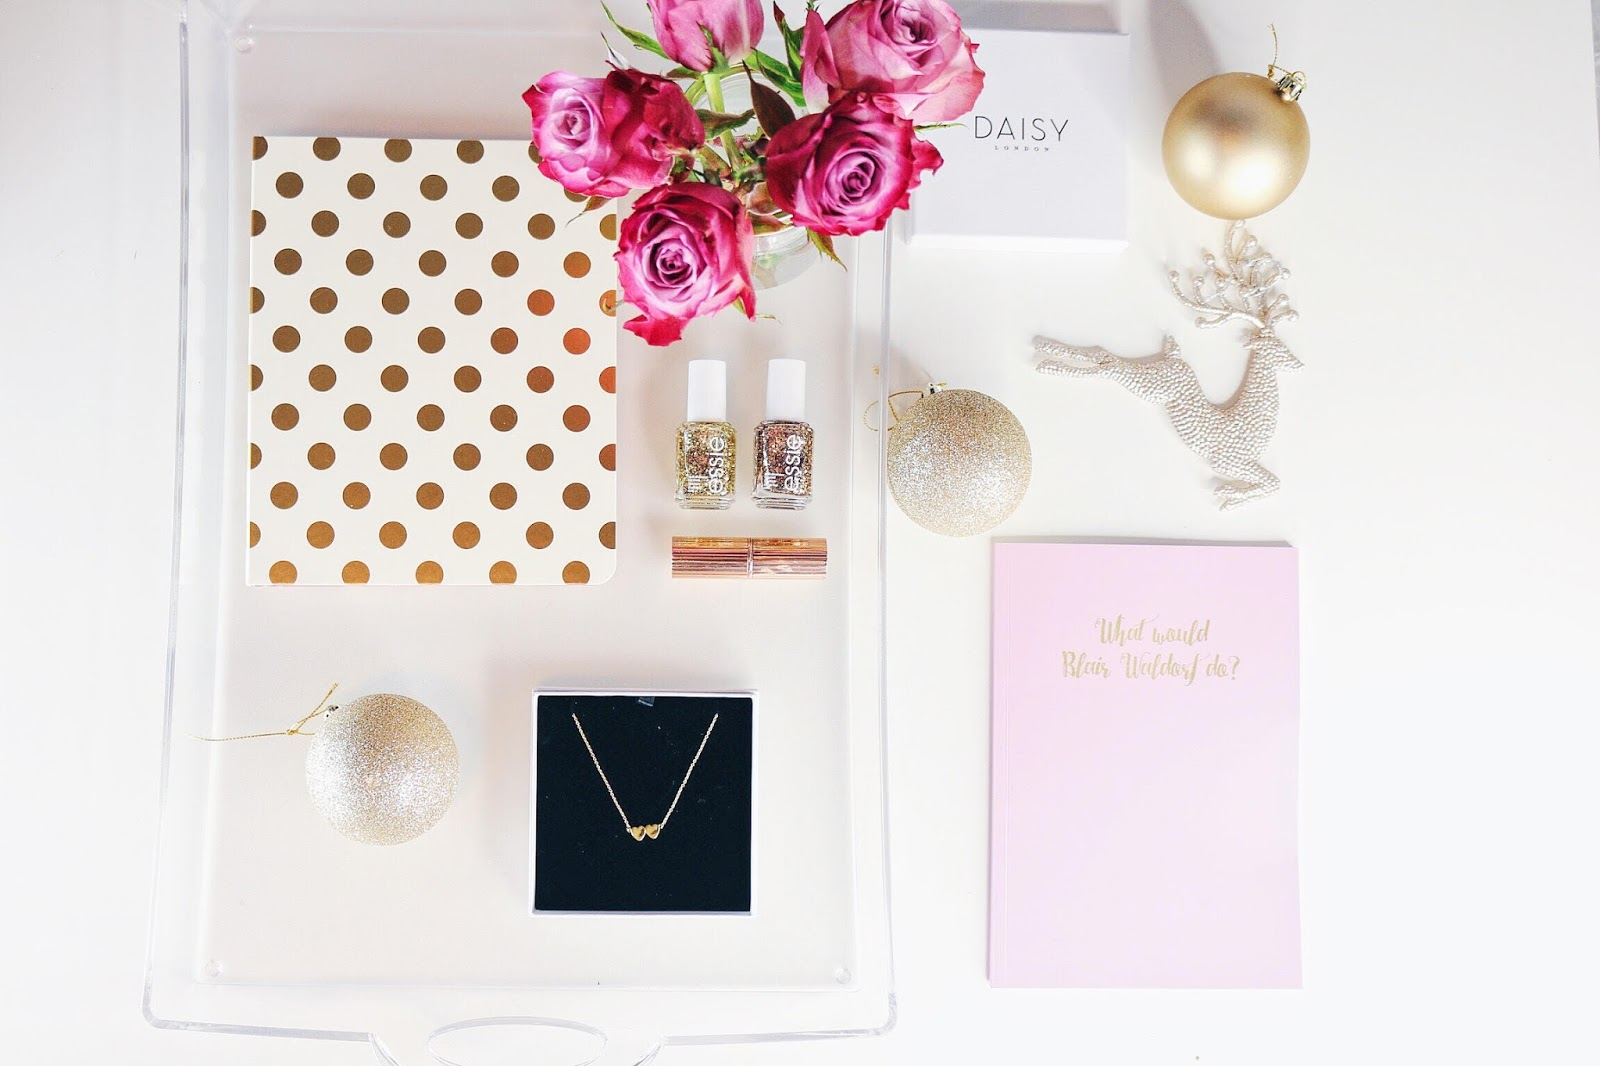 Christmas, Christmas gift guide, The Internet Christmas Gift Guide, Christmas shopping, stationery, Lifestyle, Kate Spade, Jewellery, Presents, Mean Girls, etsy,